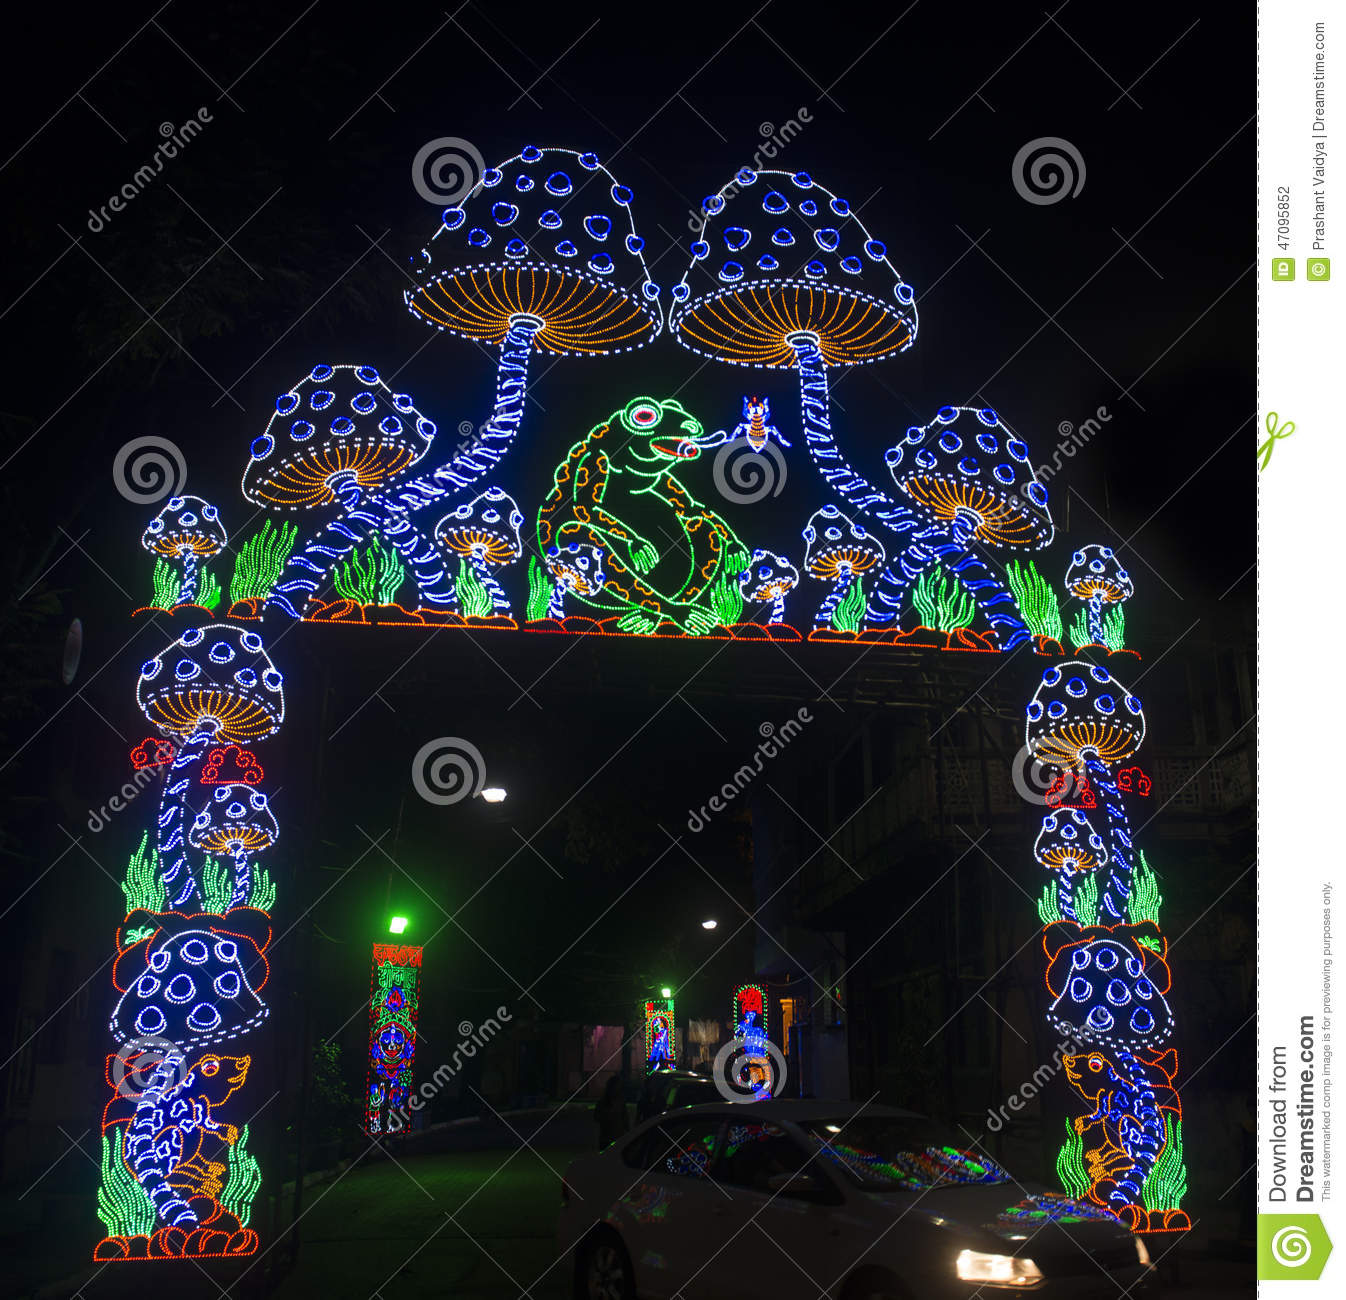 Lighting decoration at durga puja festival editorial photography download lighting decoration at durga puja festival editorial photography image of their lighting altavistaventures Choice Image